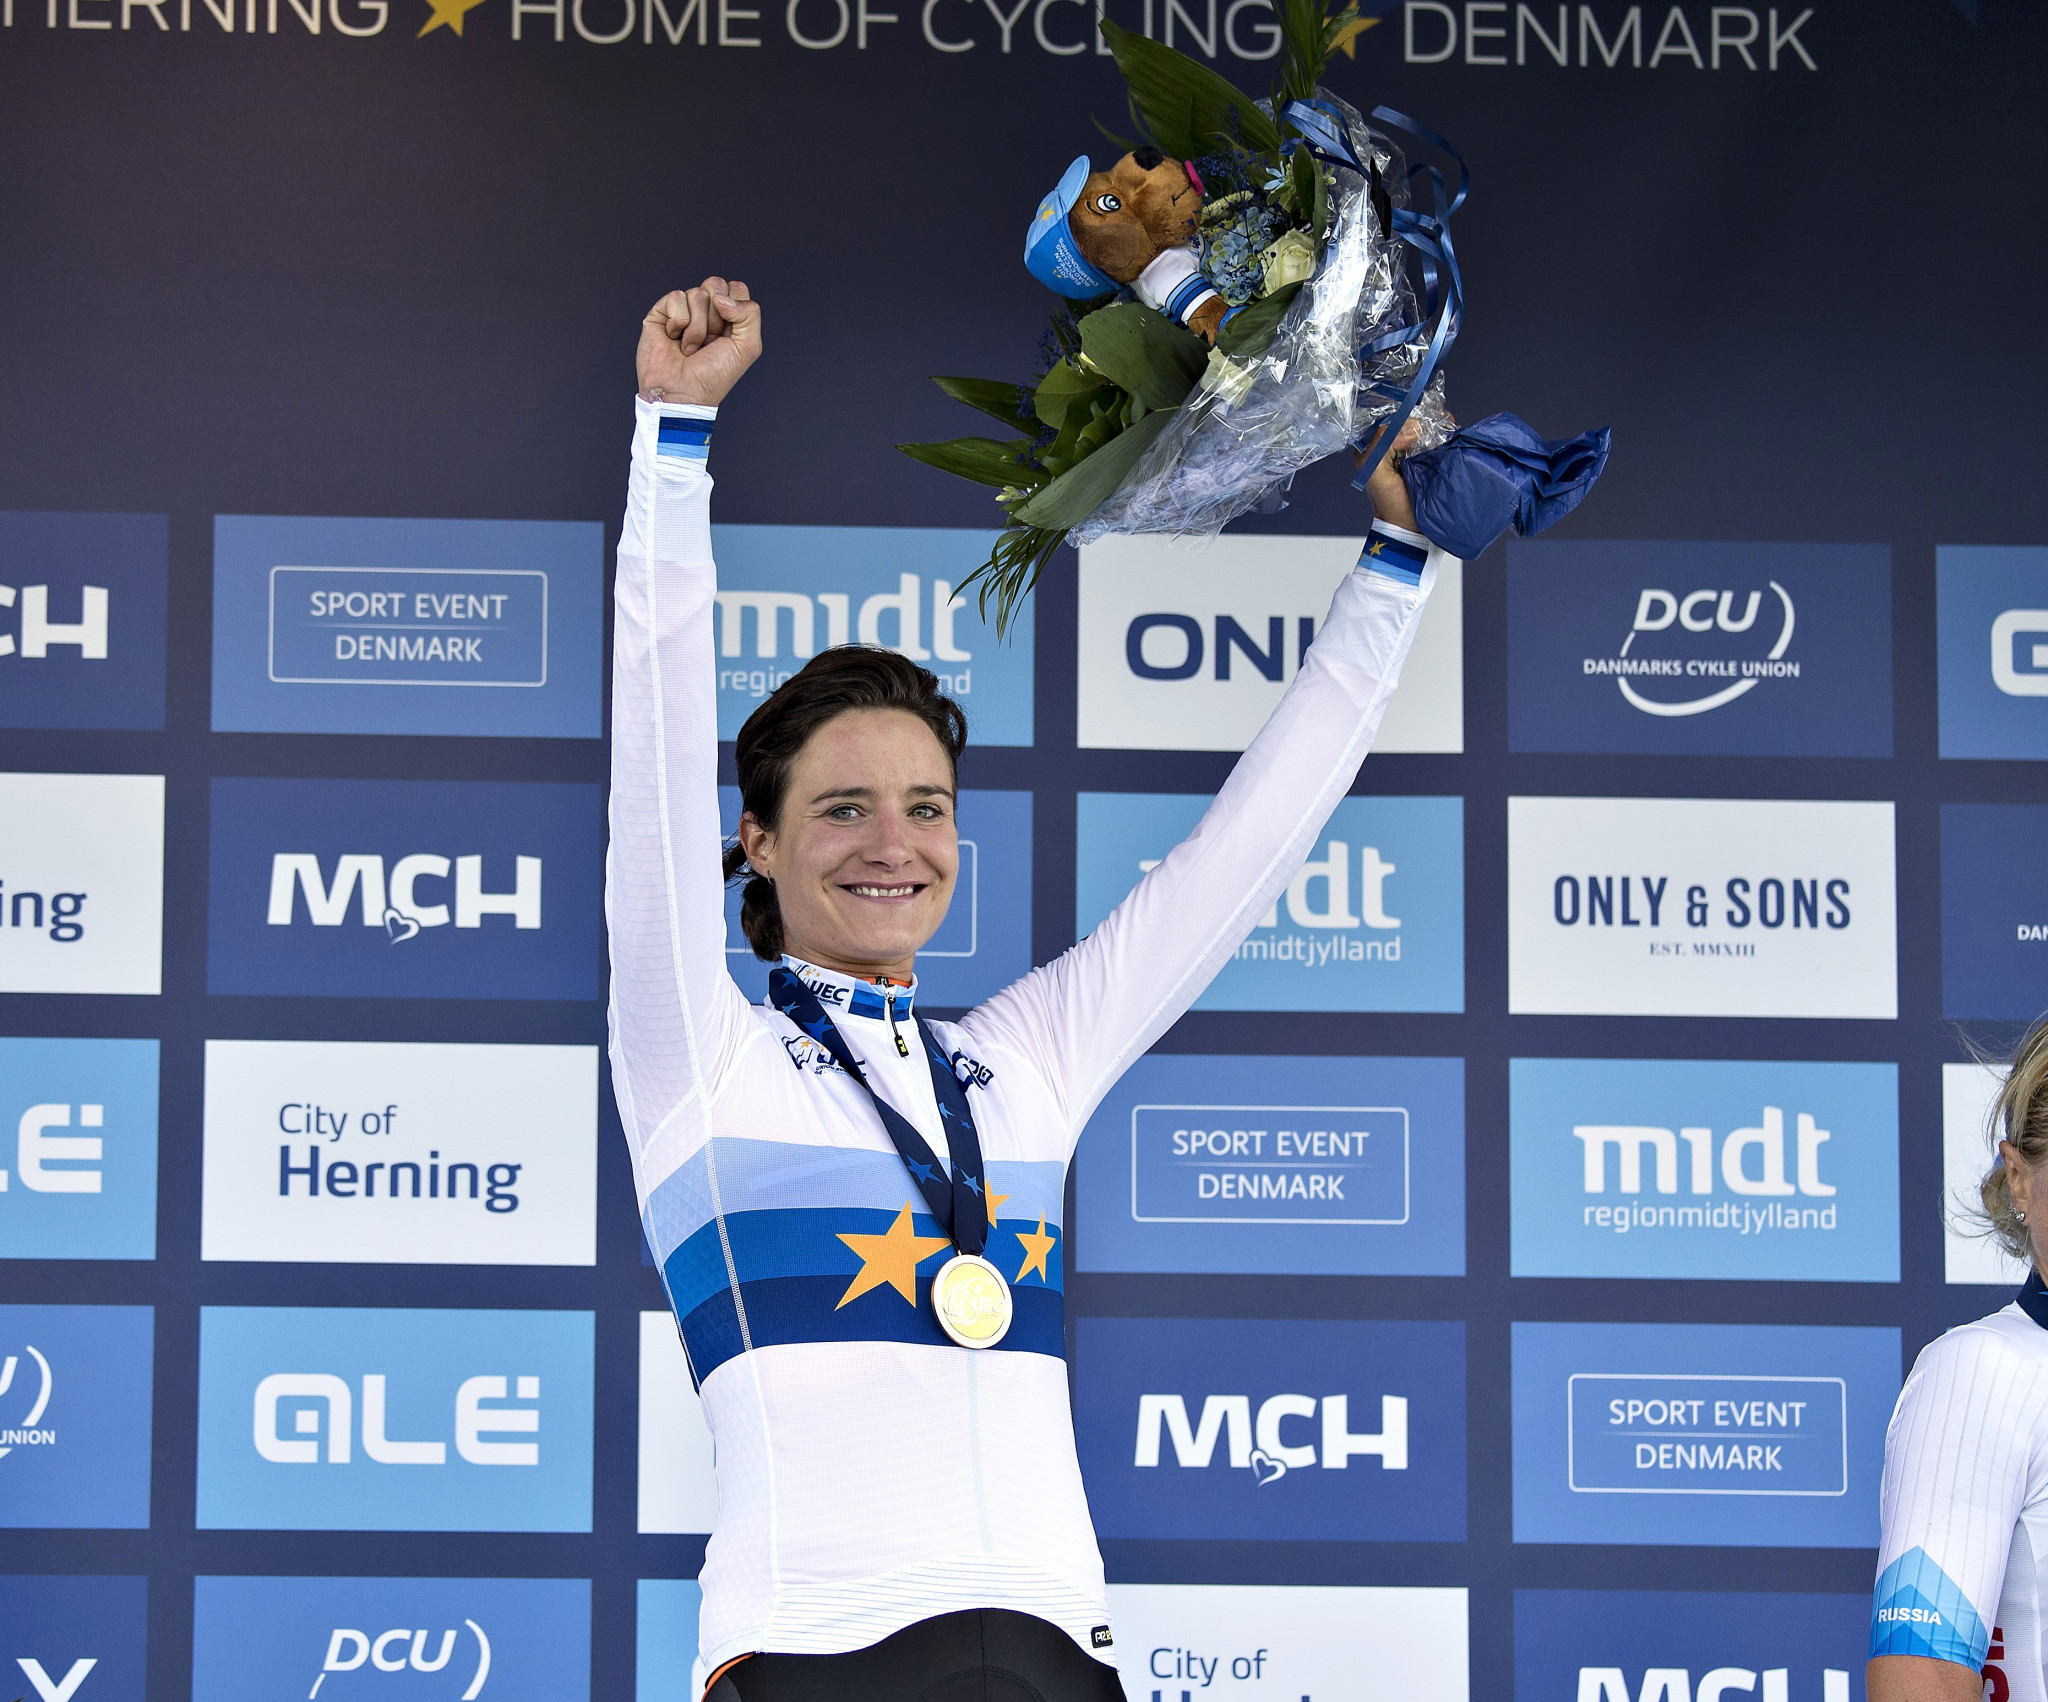 Six candidates aim for road representative spots on UCI Athletes' Commission